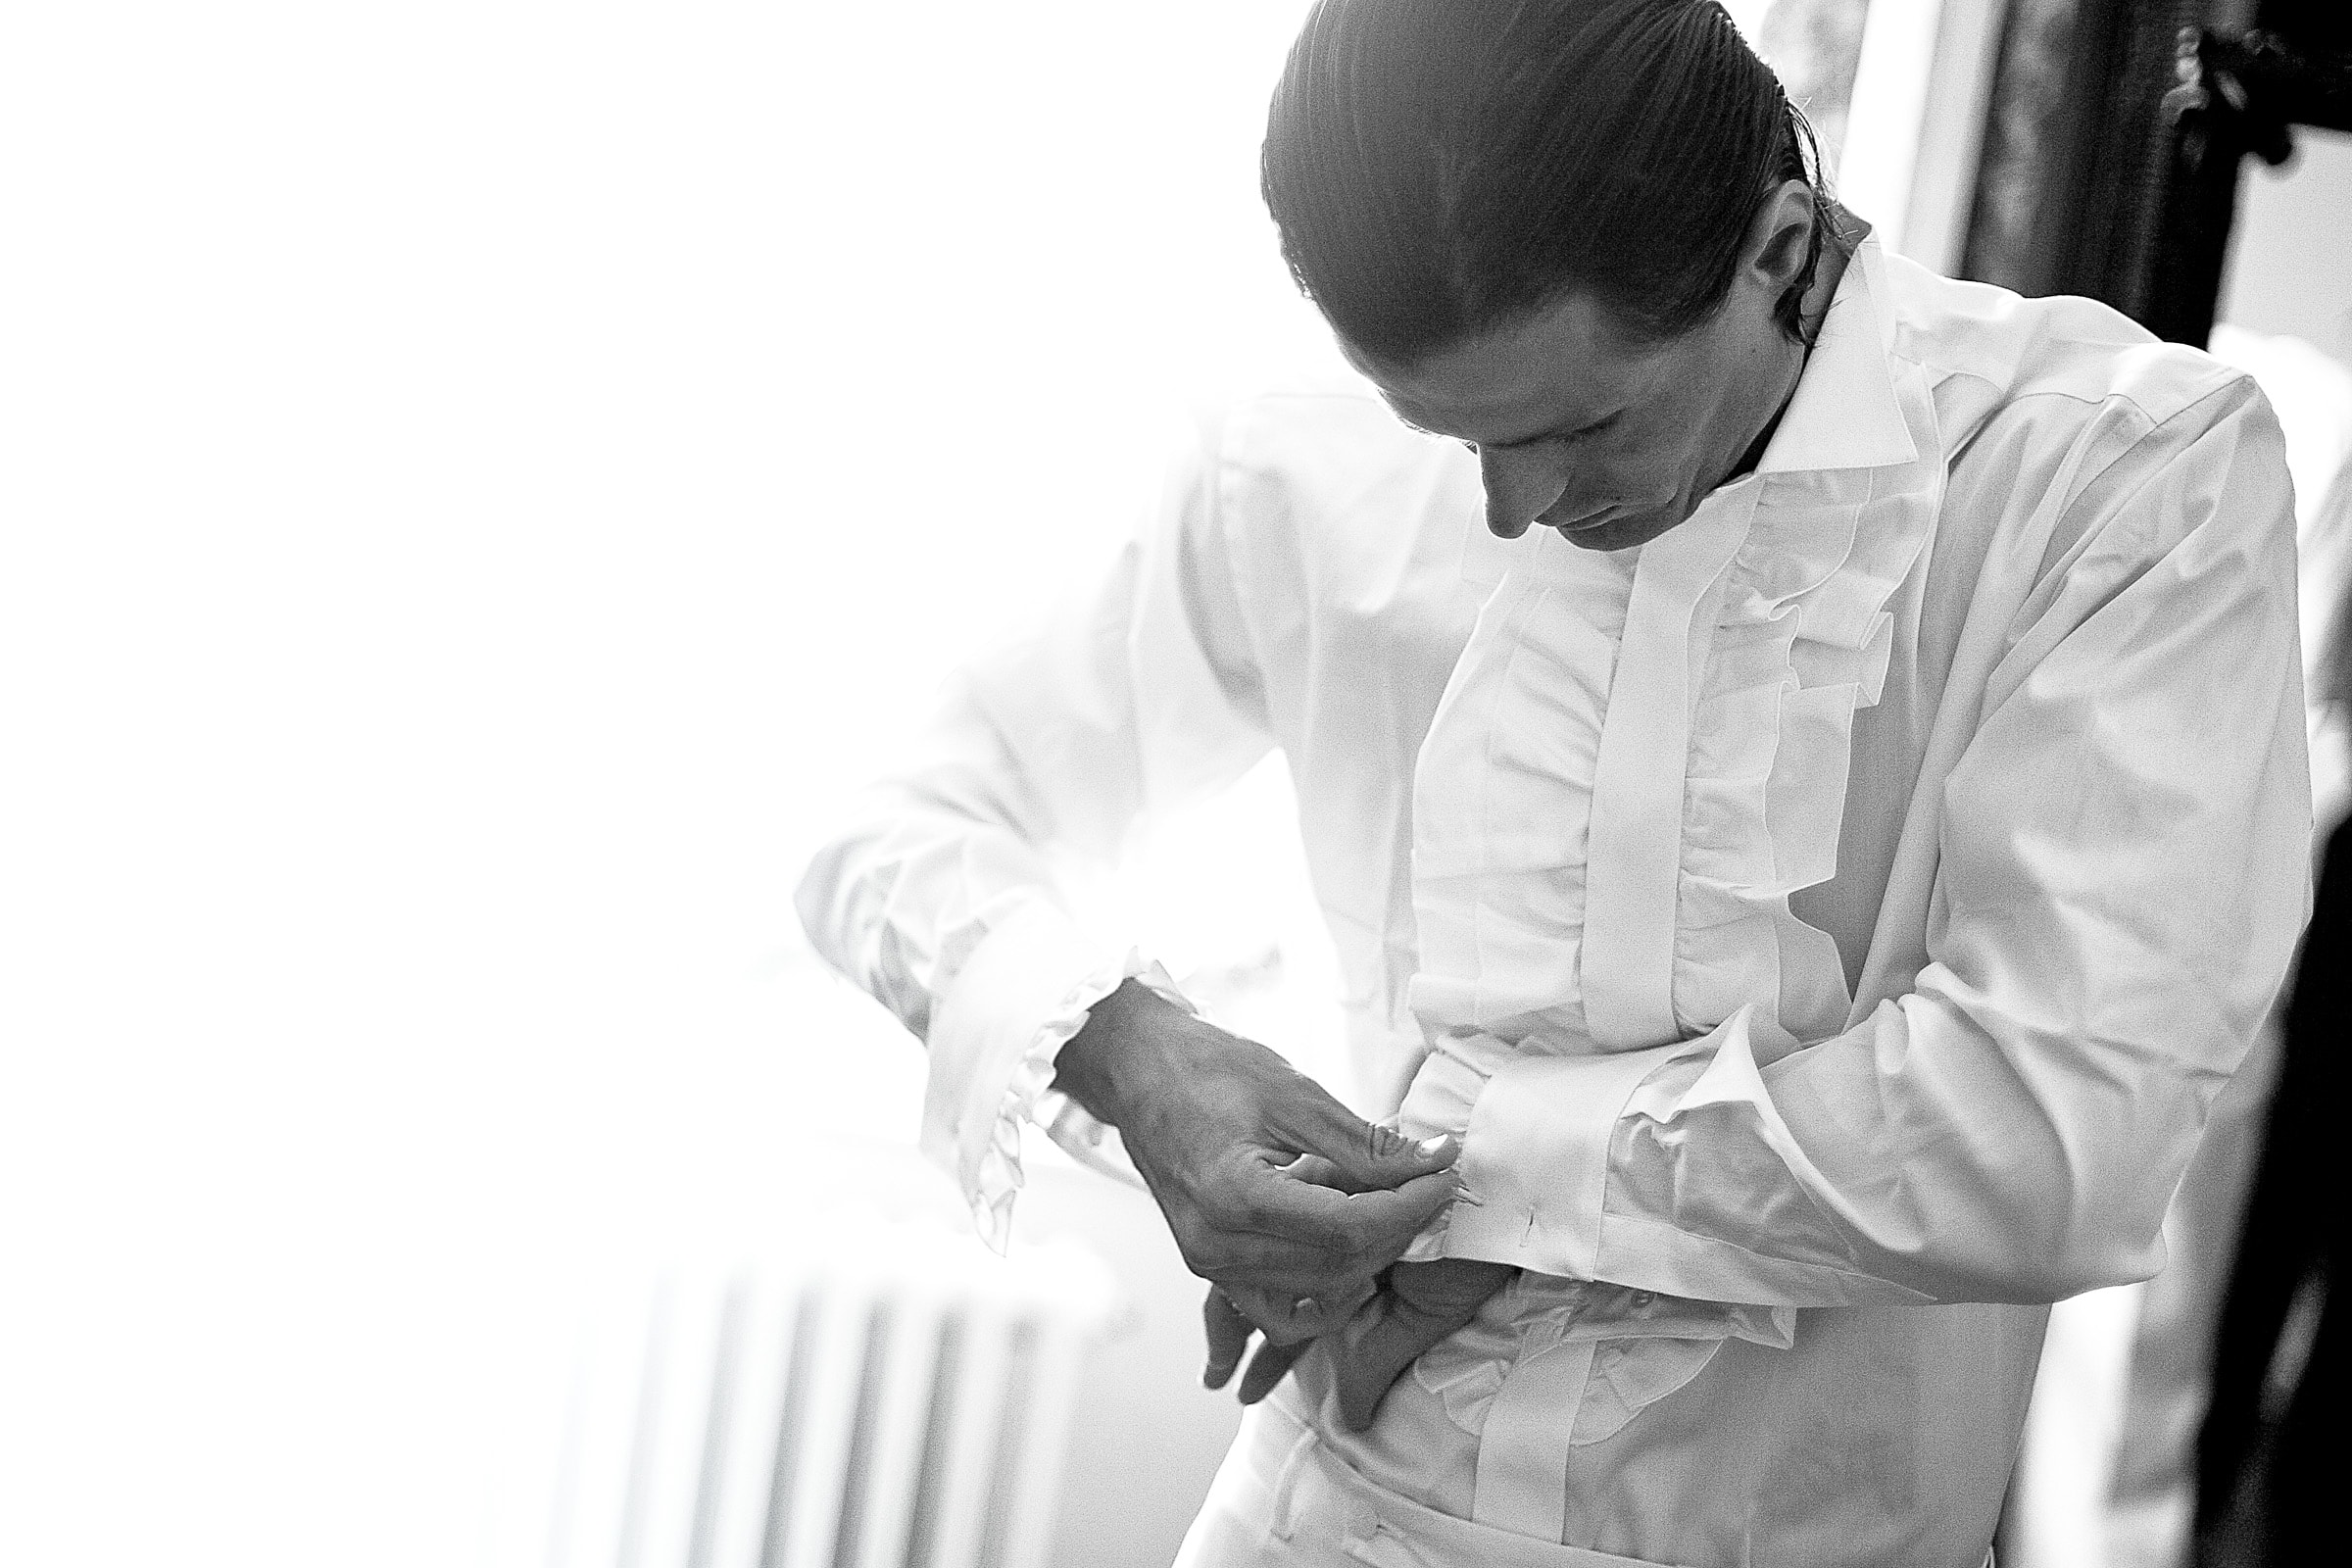 Groom getting ready for his French chateau wedding in South of France while putting on a ruffled wedding shirt